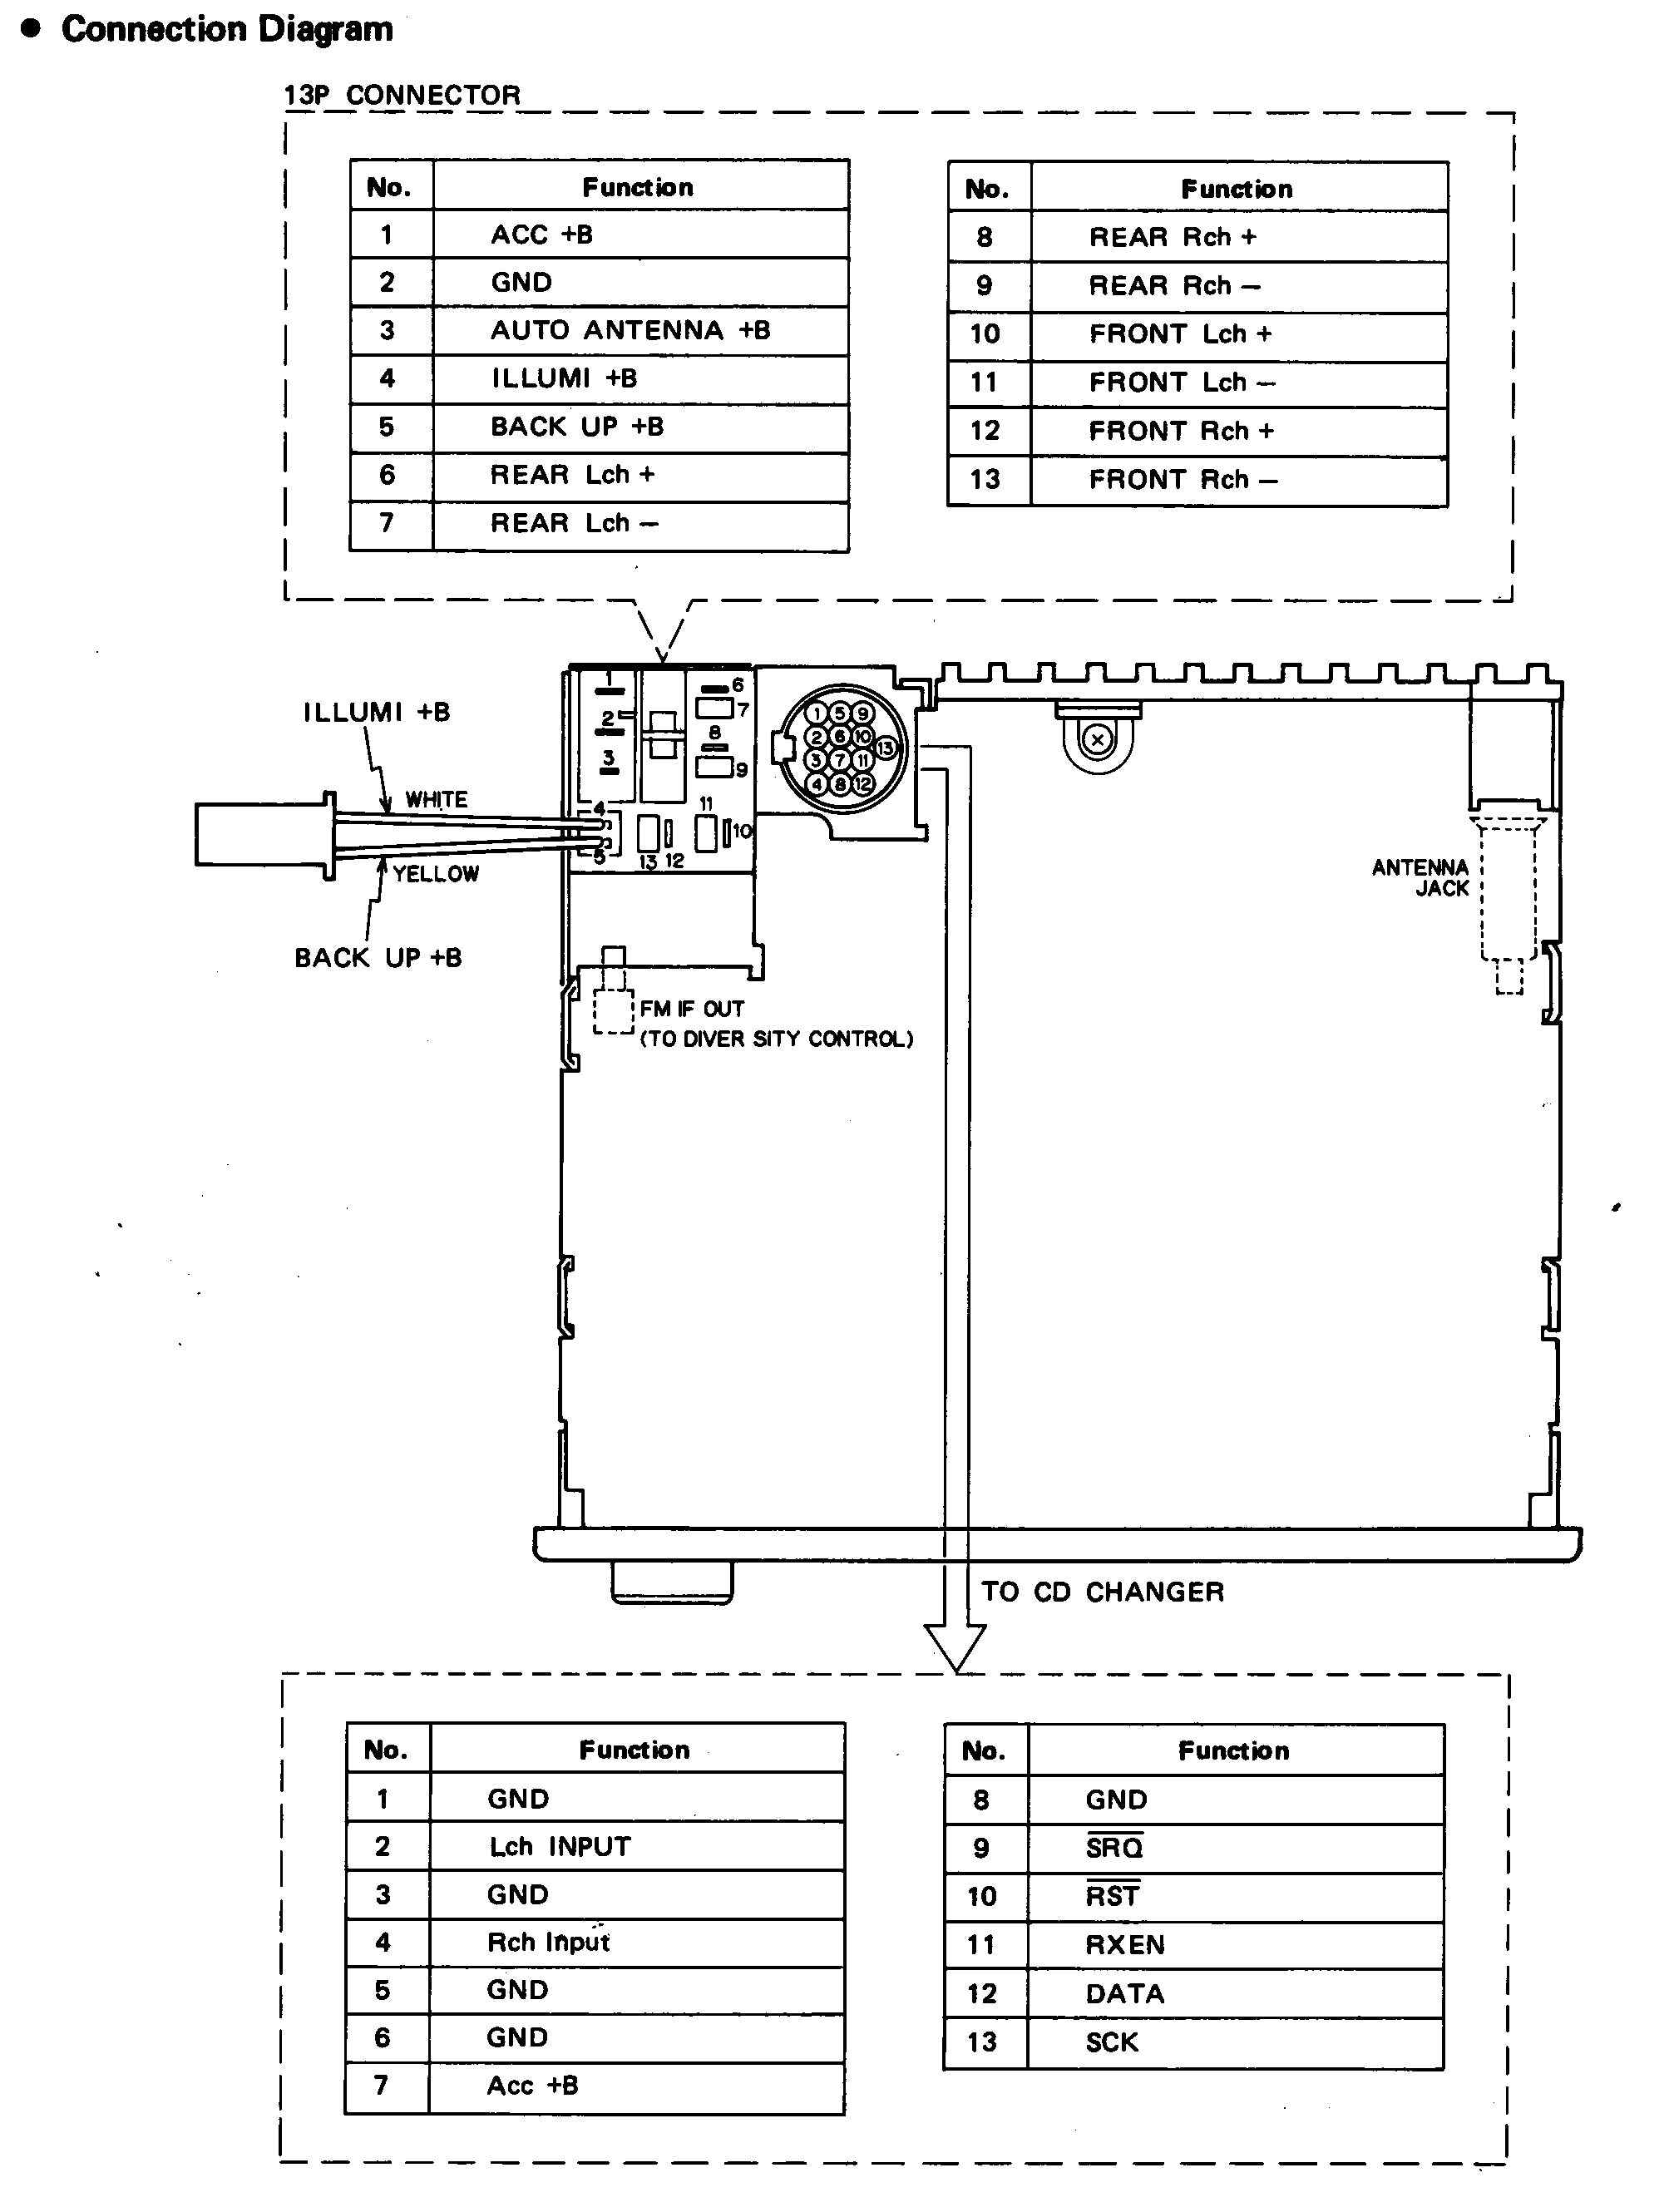 WireHarnessBMW121701 kenwood car radio wiring diagram wirdig readingrat net e46 speaker wiring diagram at soozxer.org